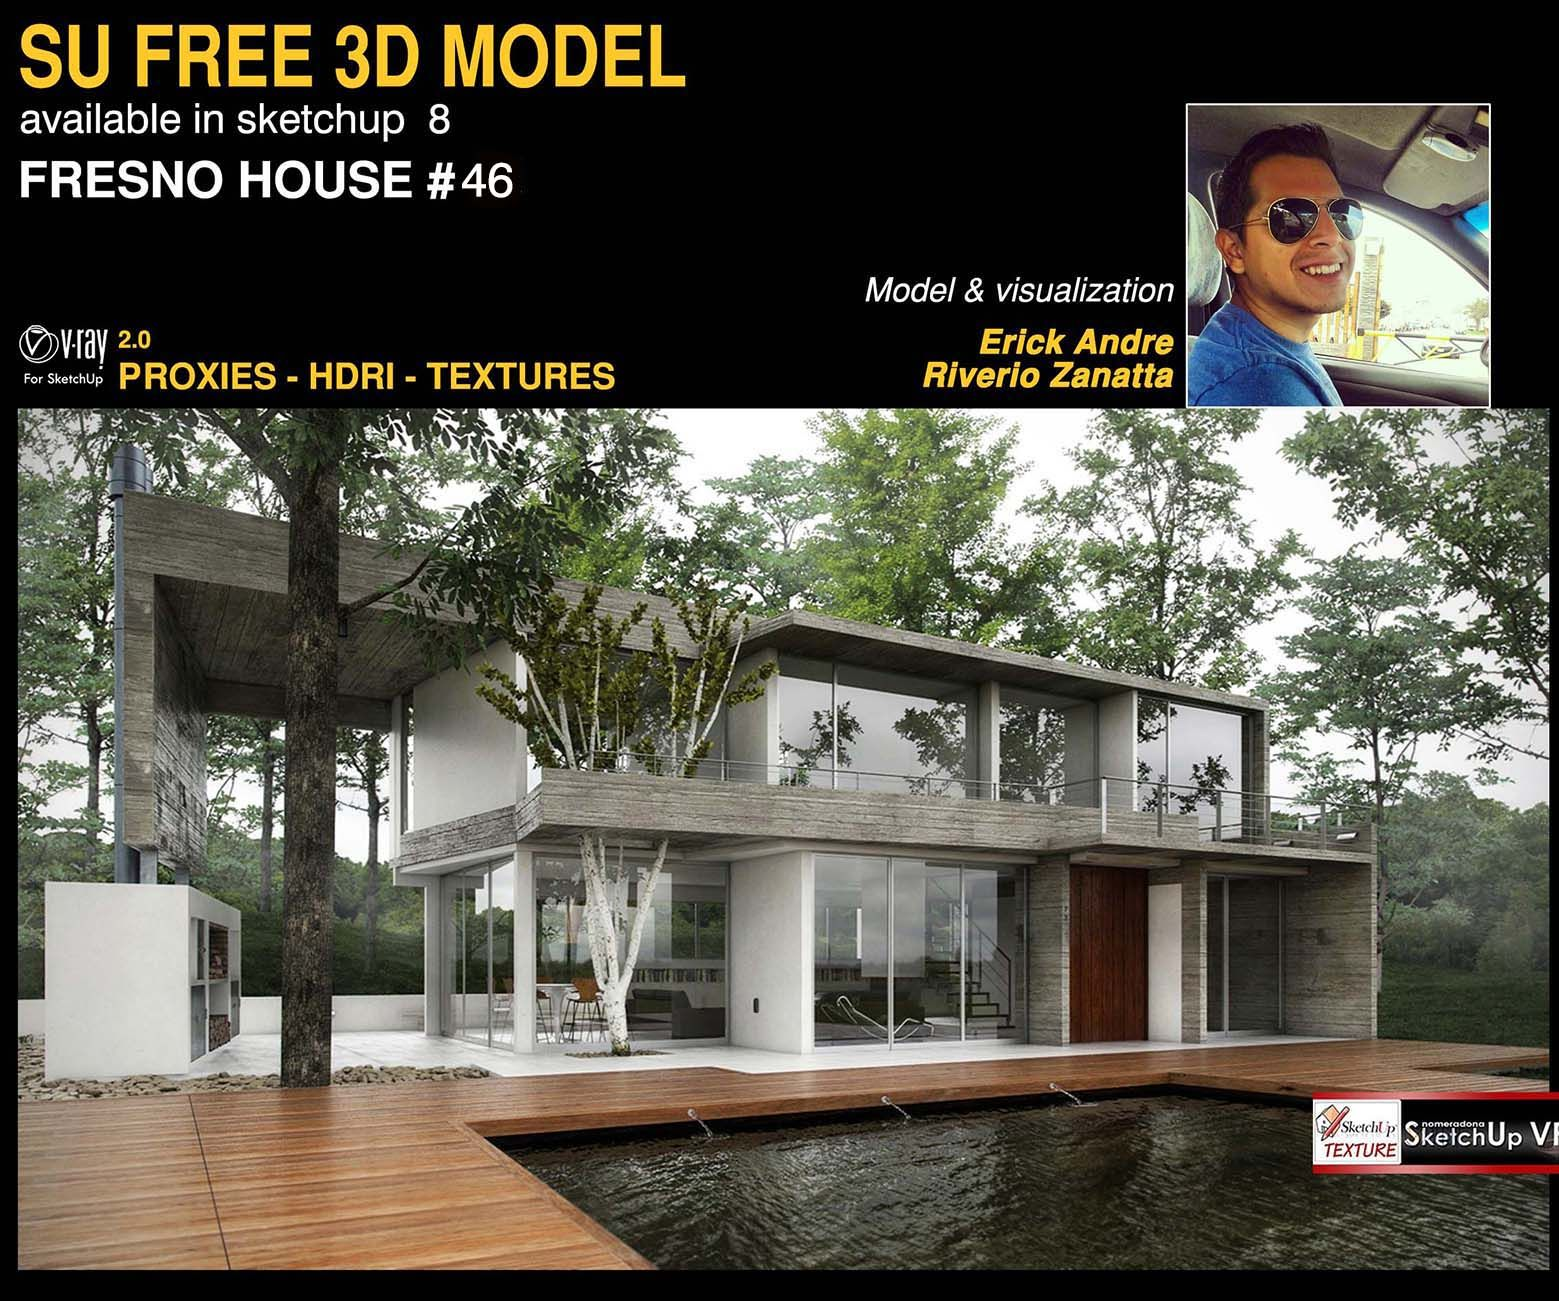 Awesome free sketchup 3d model fresno house 46 httpwww texture seamless sketchup models vray podium and photoshop tutorials resources trends architecture and interior design baditri Images